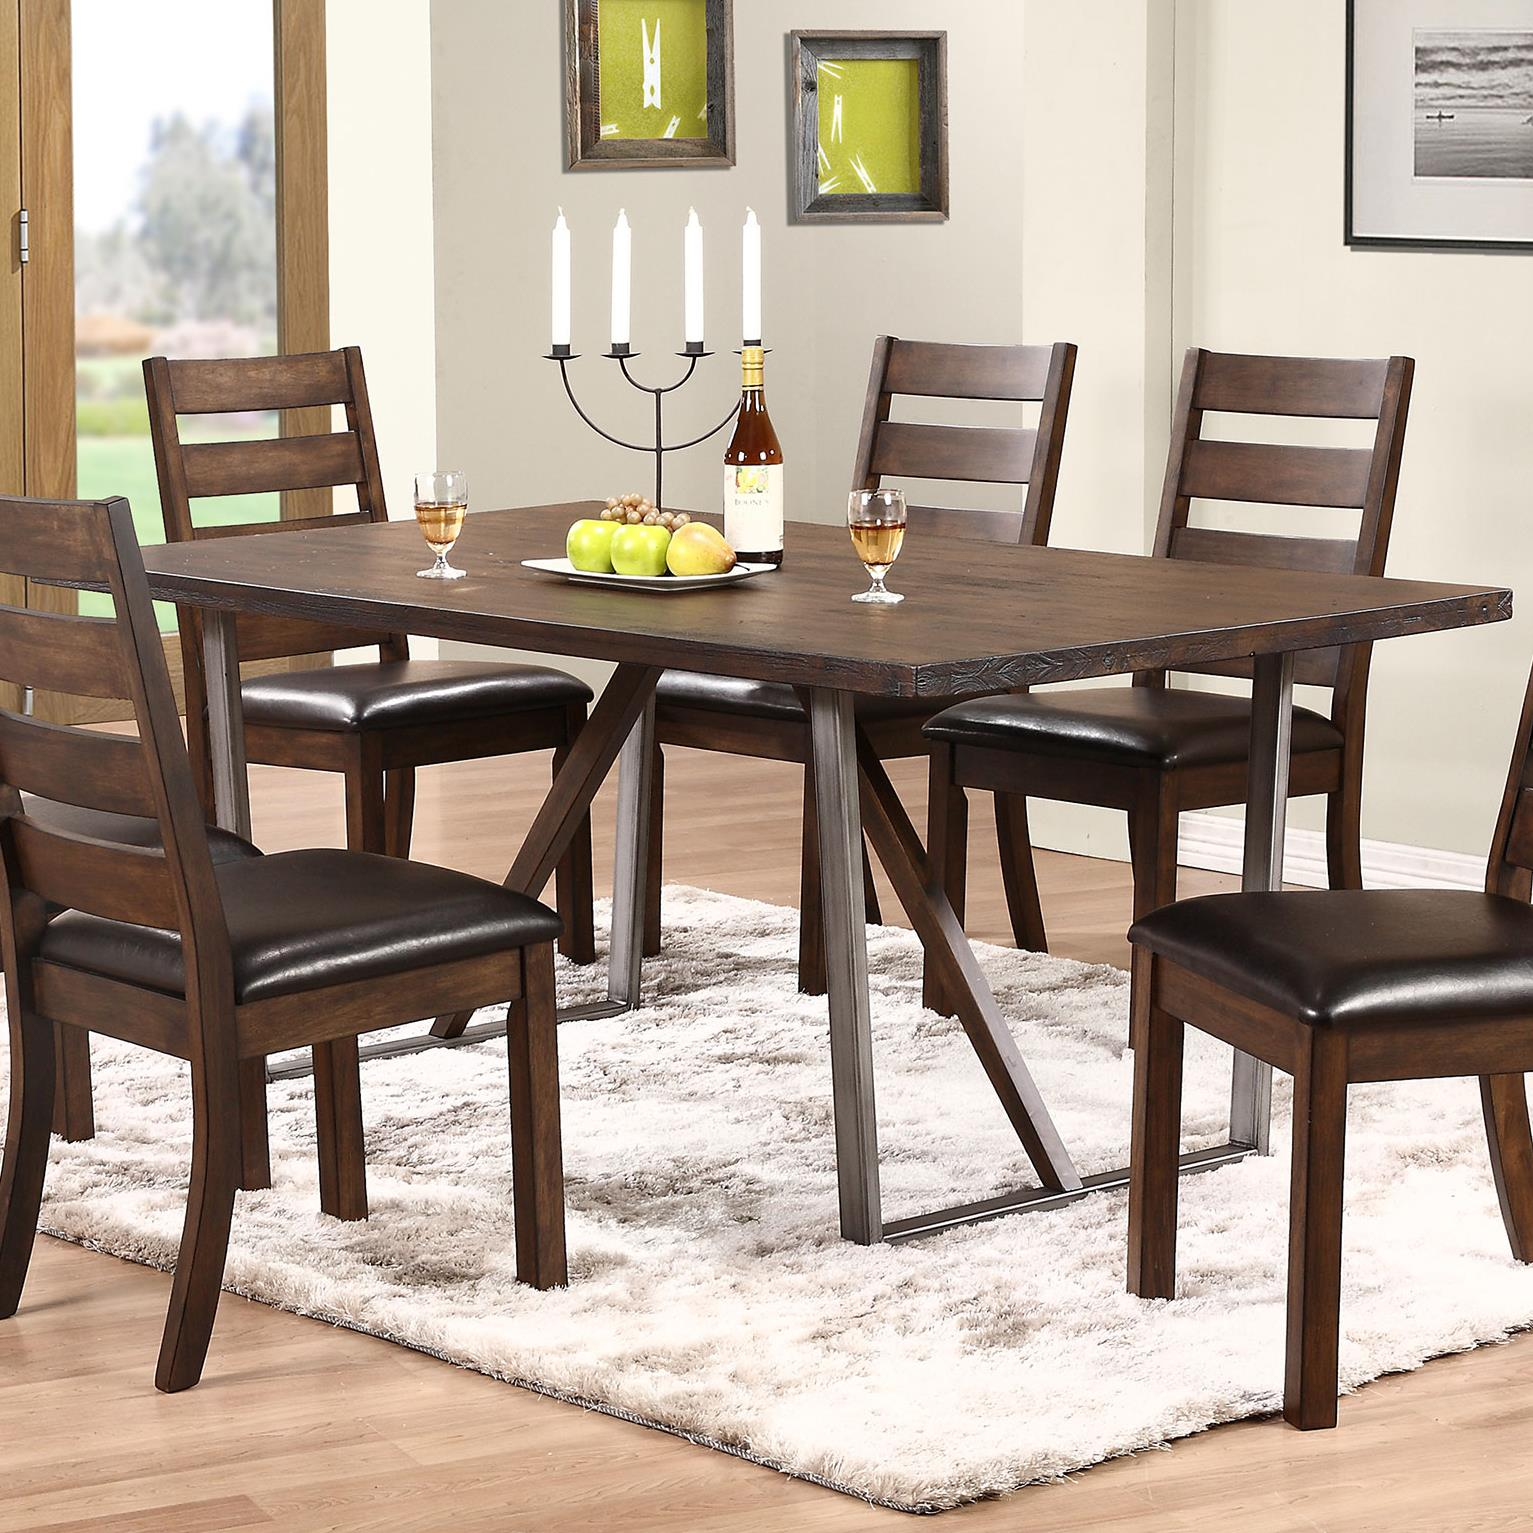 Kendall Trestle Table by Winners Only at Dunk & Bright Furniture